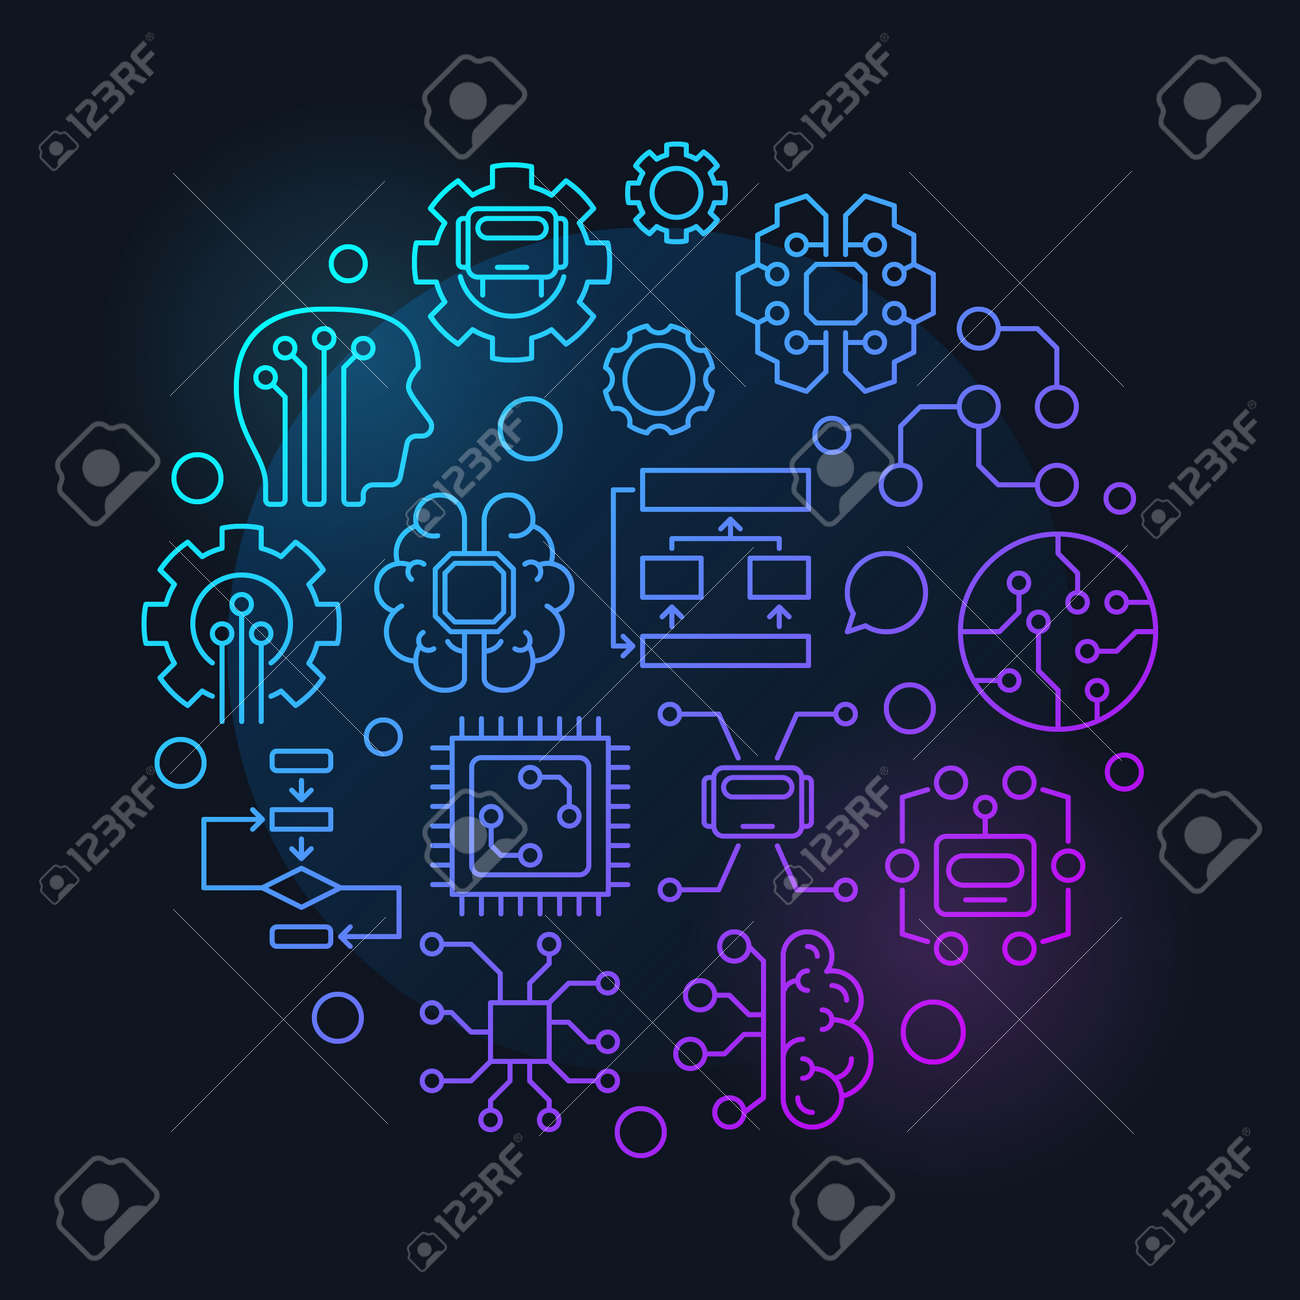 Artificial intelligence round vector colorful linear illustration or sign on dark background - 87887609